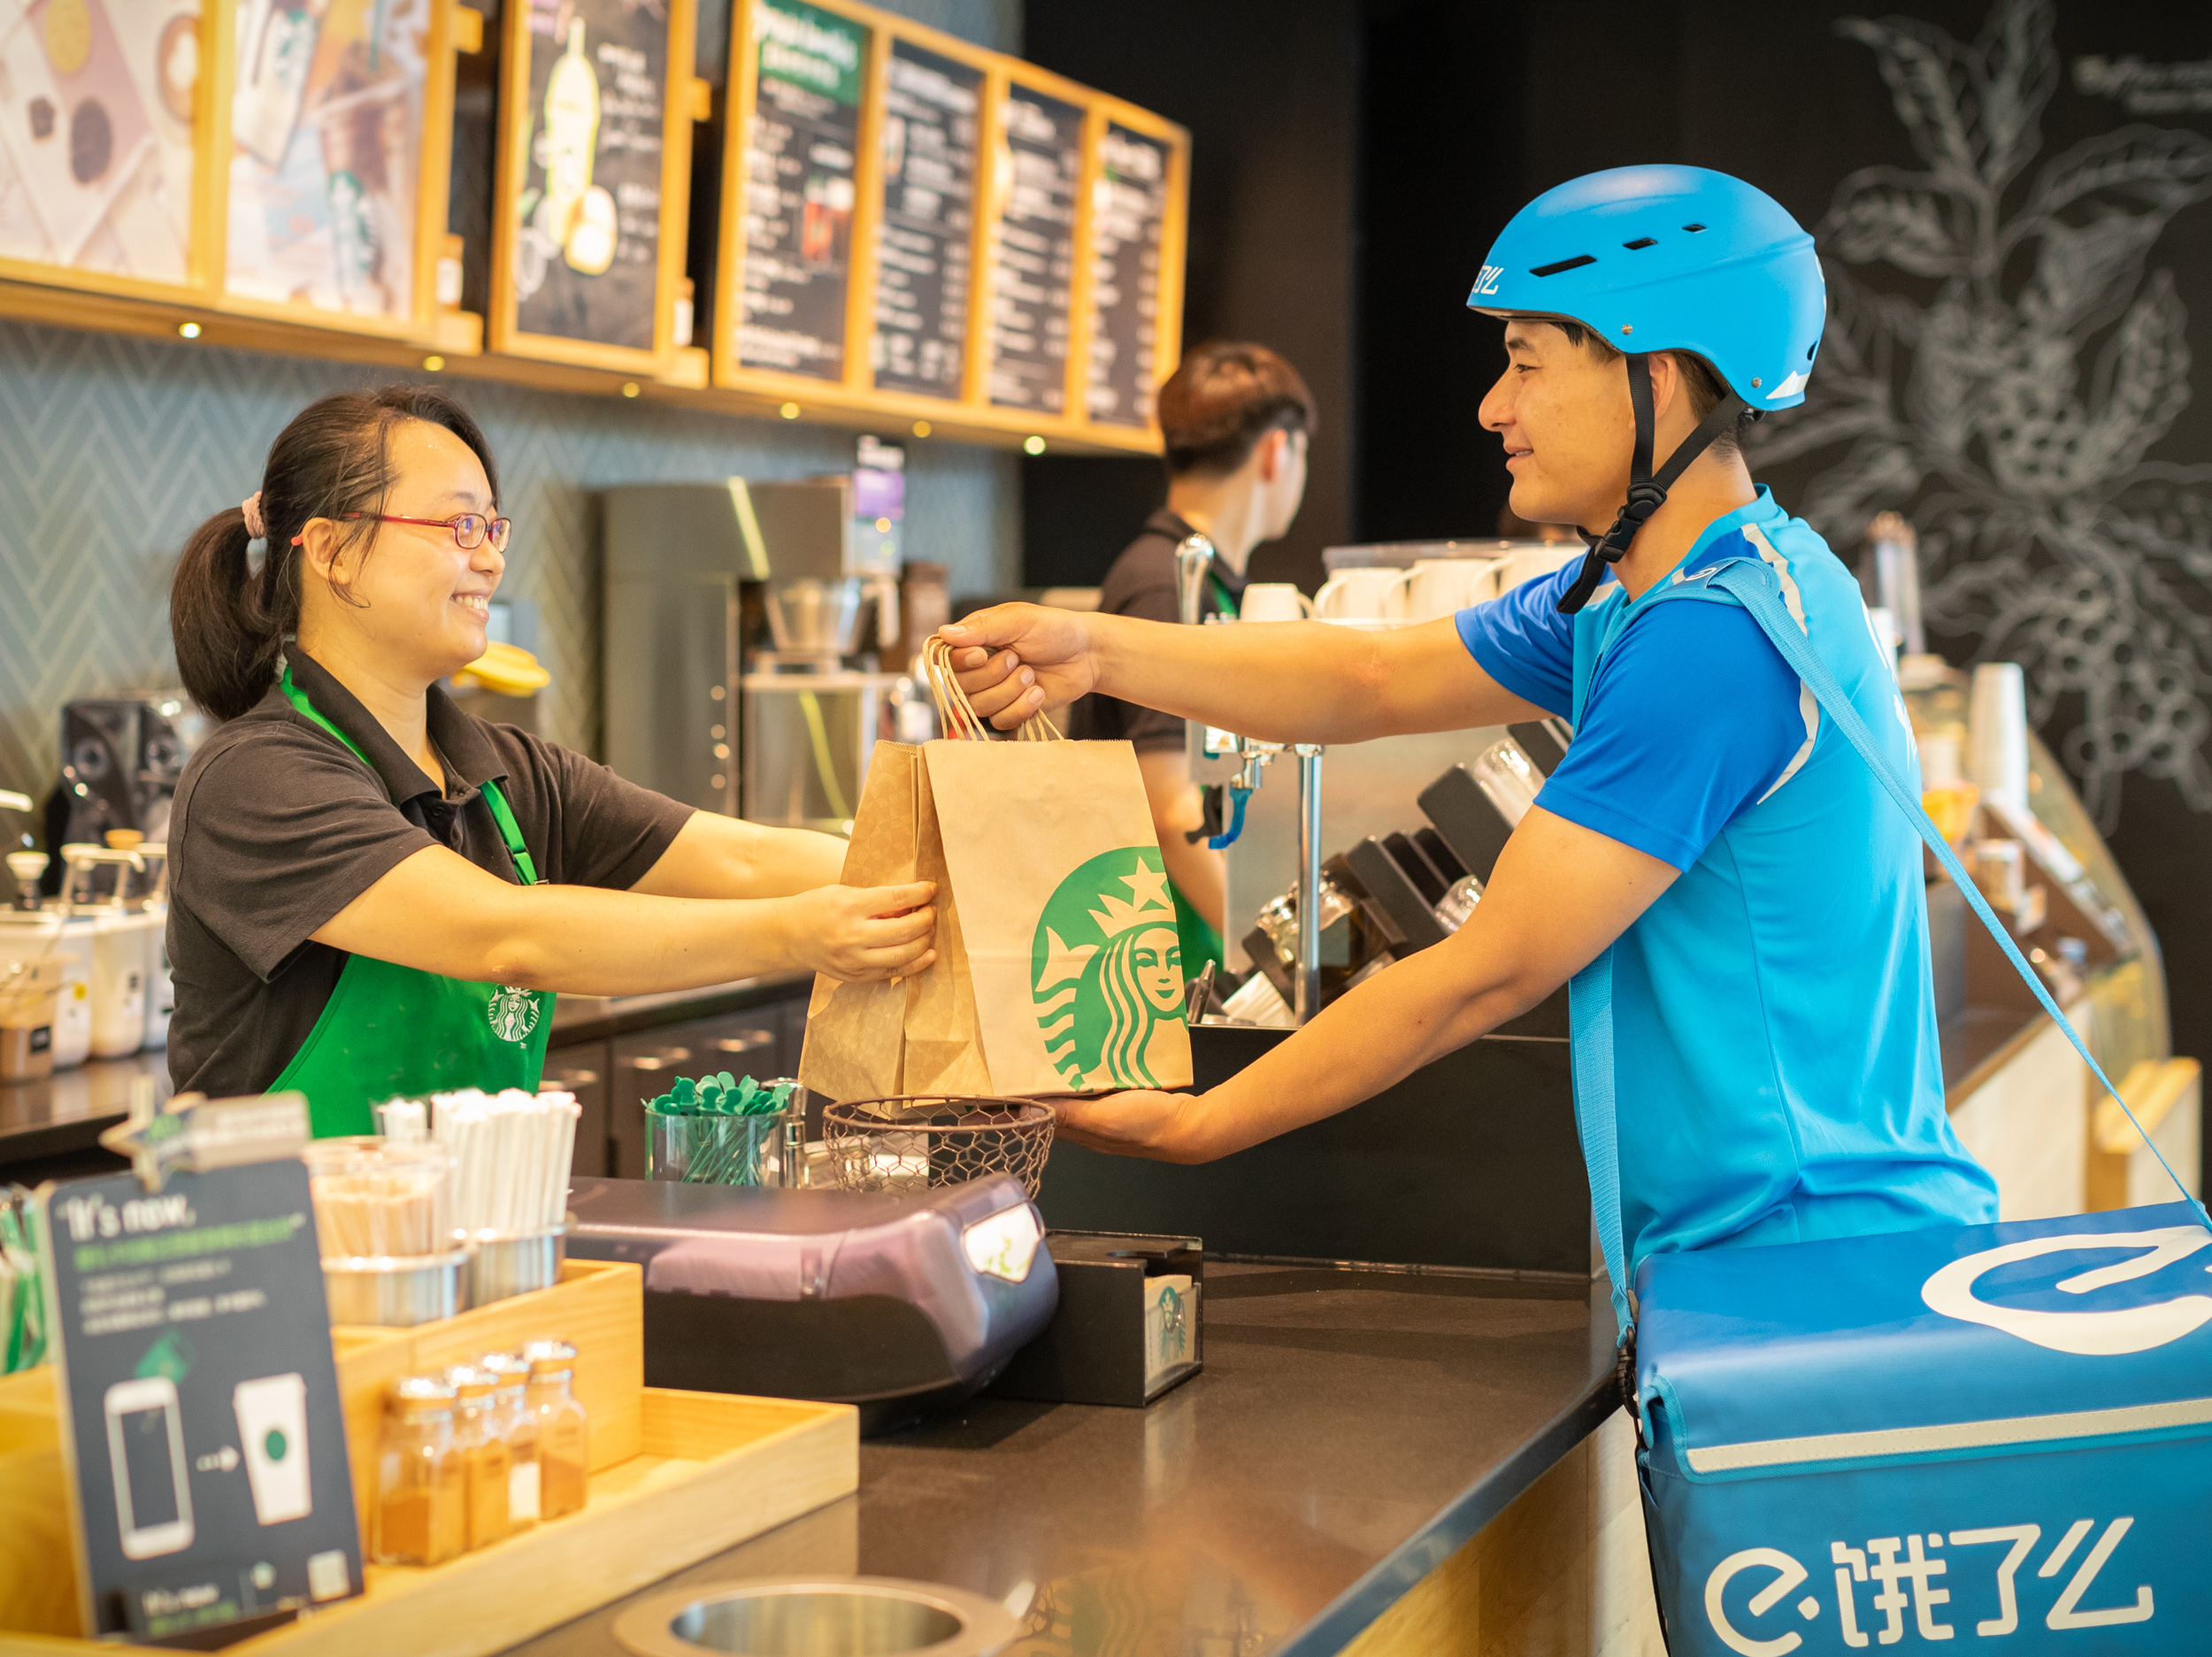 what industry is starbucks in